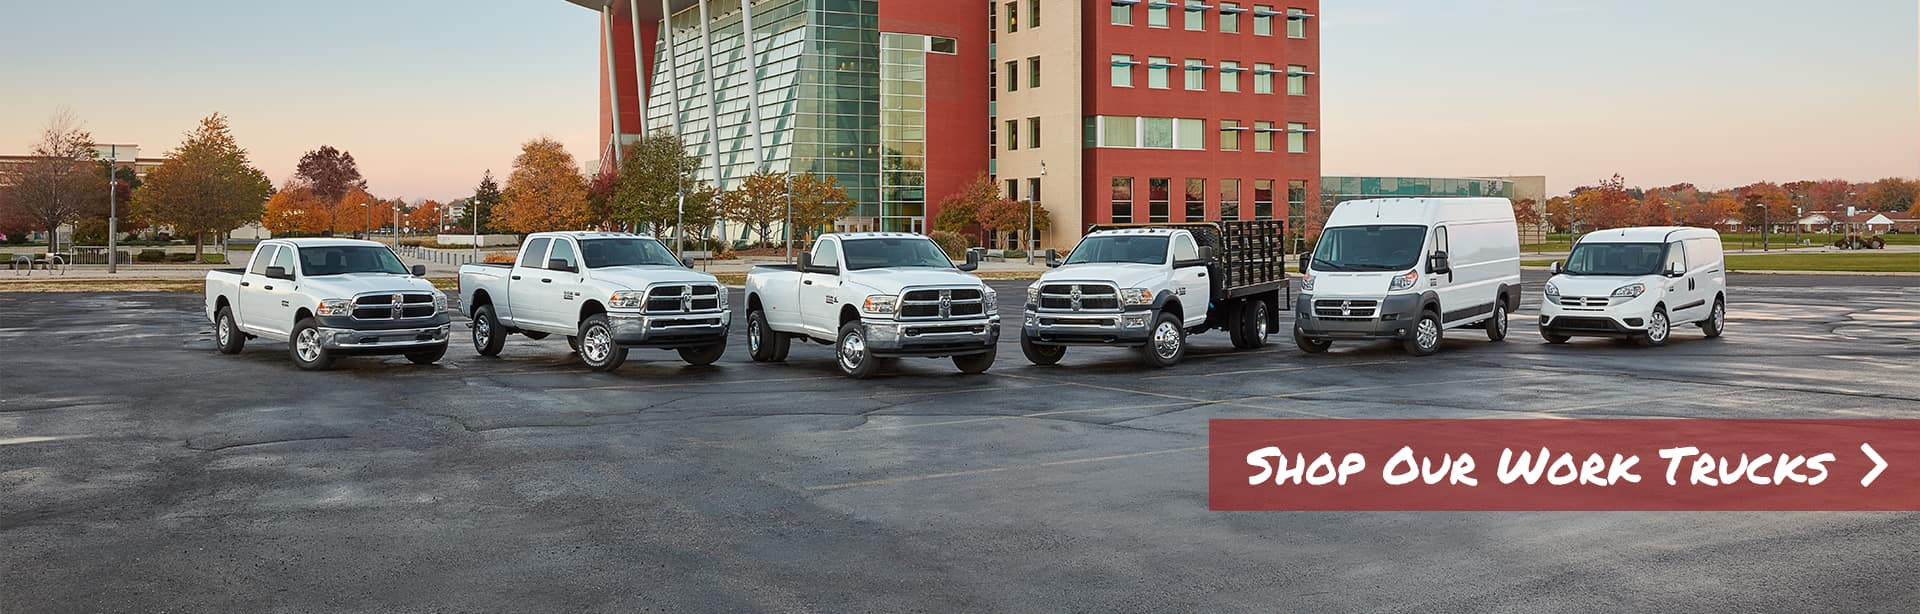 RAM Commercial Work Truck Dealer serving Crawfordsville, Lafayette and Indianapolis.